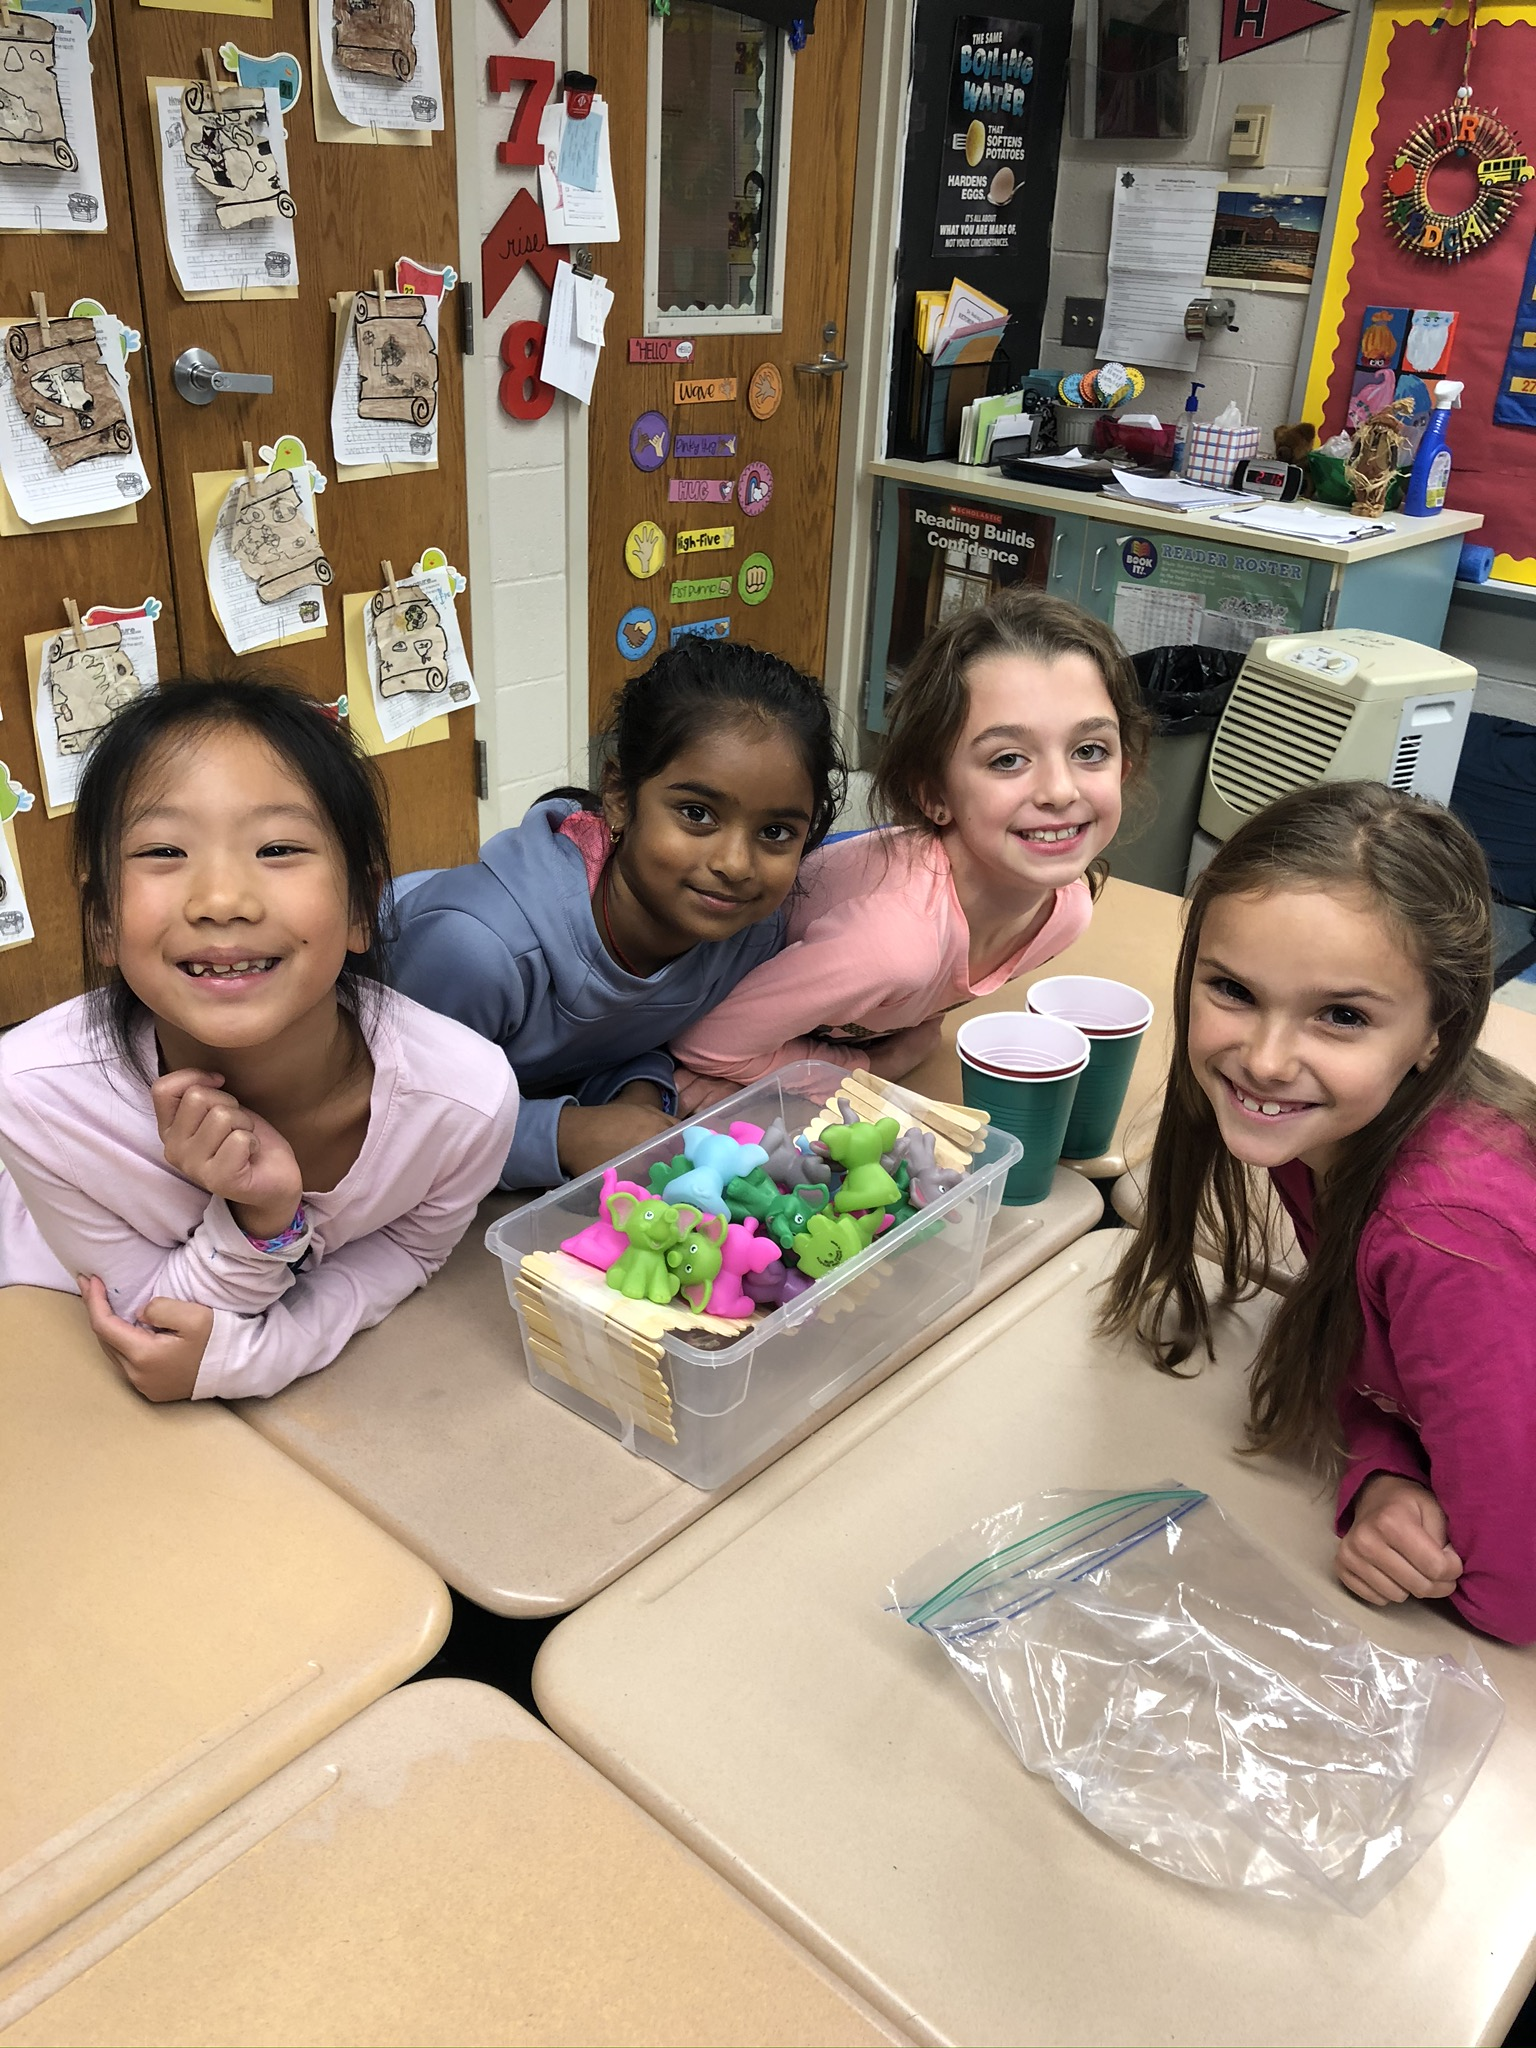 A diverse group of female students posing with a STEM project.